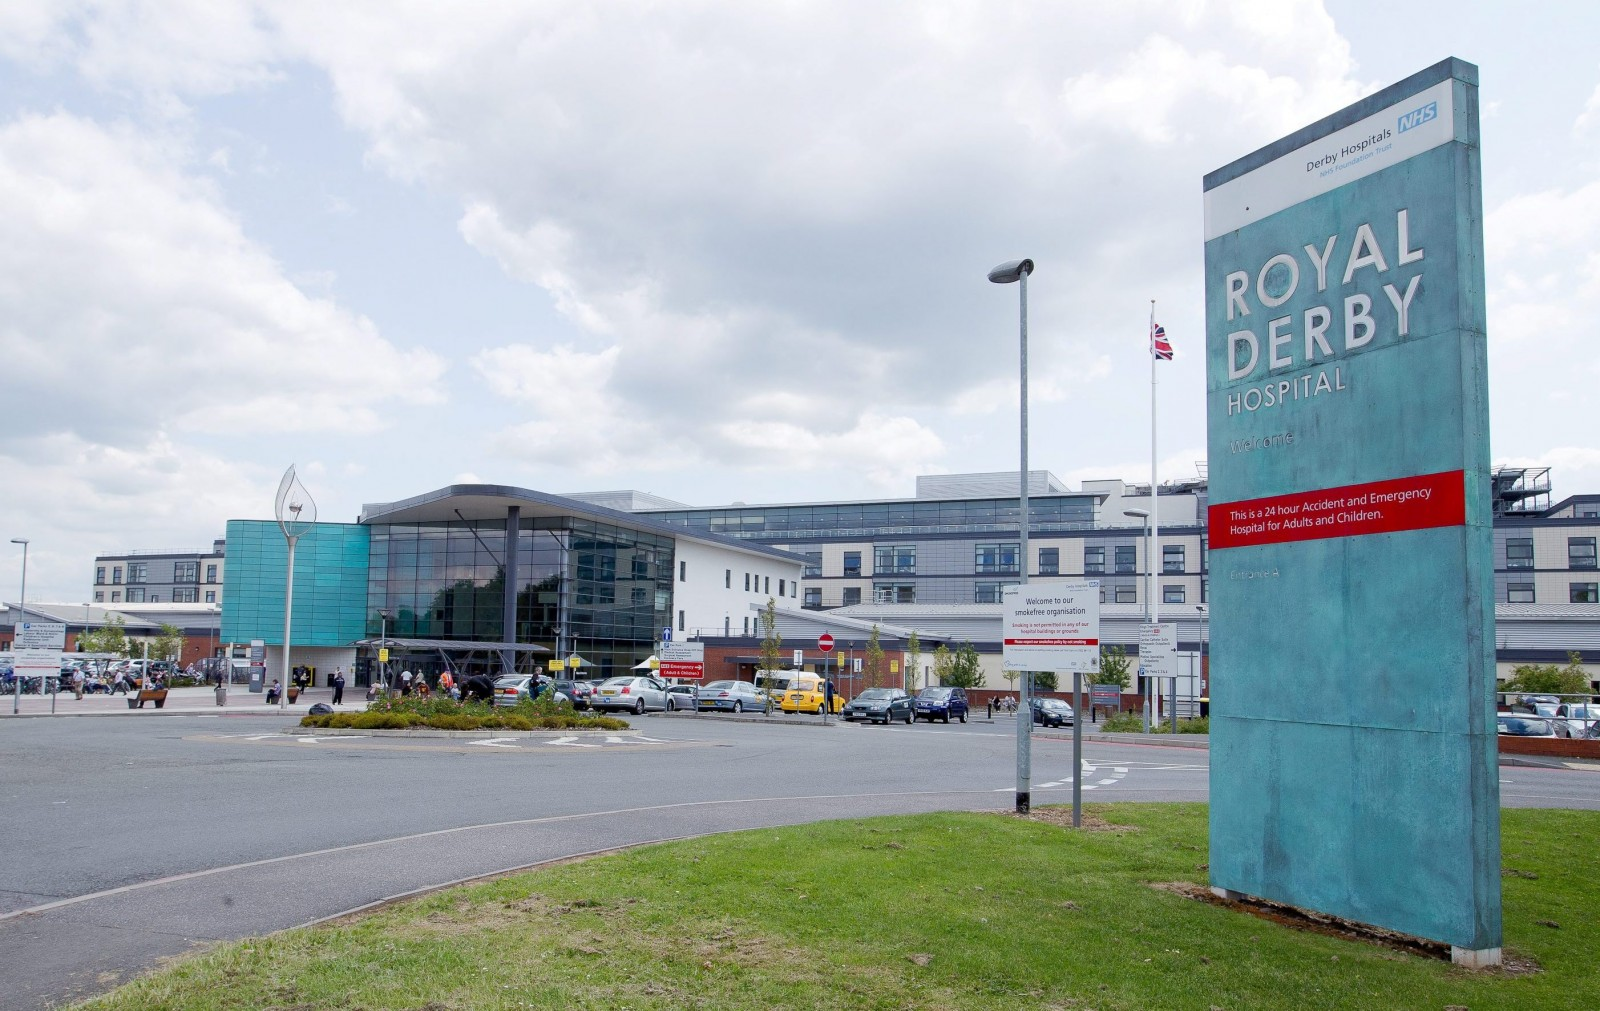 FILE PICTURE - The Royal Derby Hospital. A twelve-year-old girl who was sent home from a NHS walk-in centre twice, died 48 hours later from severe blood infection, an inquest heard.  See NTI story NTIDEATH.  Franchesca Pawson died from sepsis after nurses failed to detect the infection was spreading through her body.  When her mum, Elsa, first took the 12-year-old to the walk-in centre, medics told her to give her ibuprofen and paracetamol.  Just 48 hours after first being seen by medical staff the schoolgirl who dreamed of studying at Cambridge University died in hospital.  The inquest heard Franchesca and her mother Elsa went to the clinic in Derby on Saturday 10 January last year because she felt unwell.  Francesca's mum took her back to the centre a day later when her condition failed to improve. She was given antibiotics, but again sent home, the hearing in Derby was told.  The next day, they rushed her to the Royal Derby Hospital, where she died. The cause of death was an infection which spread into her bloodstream.